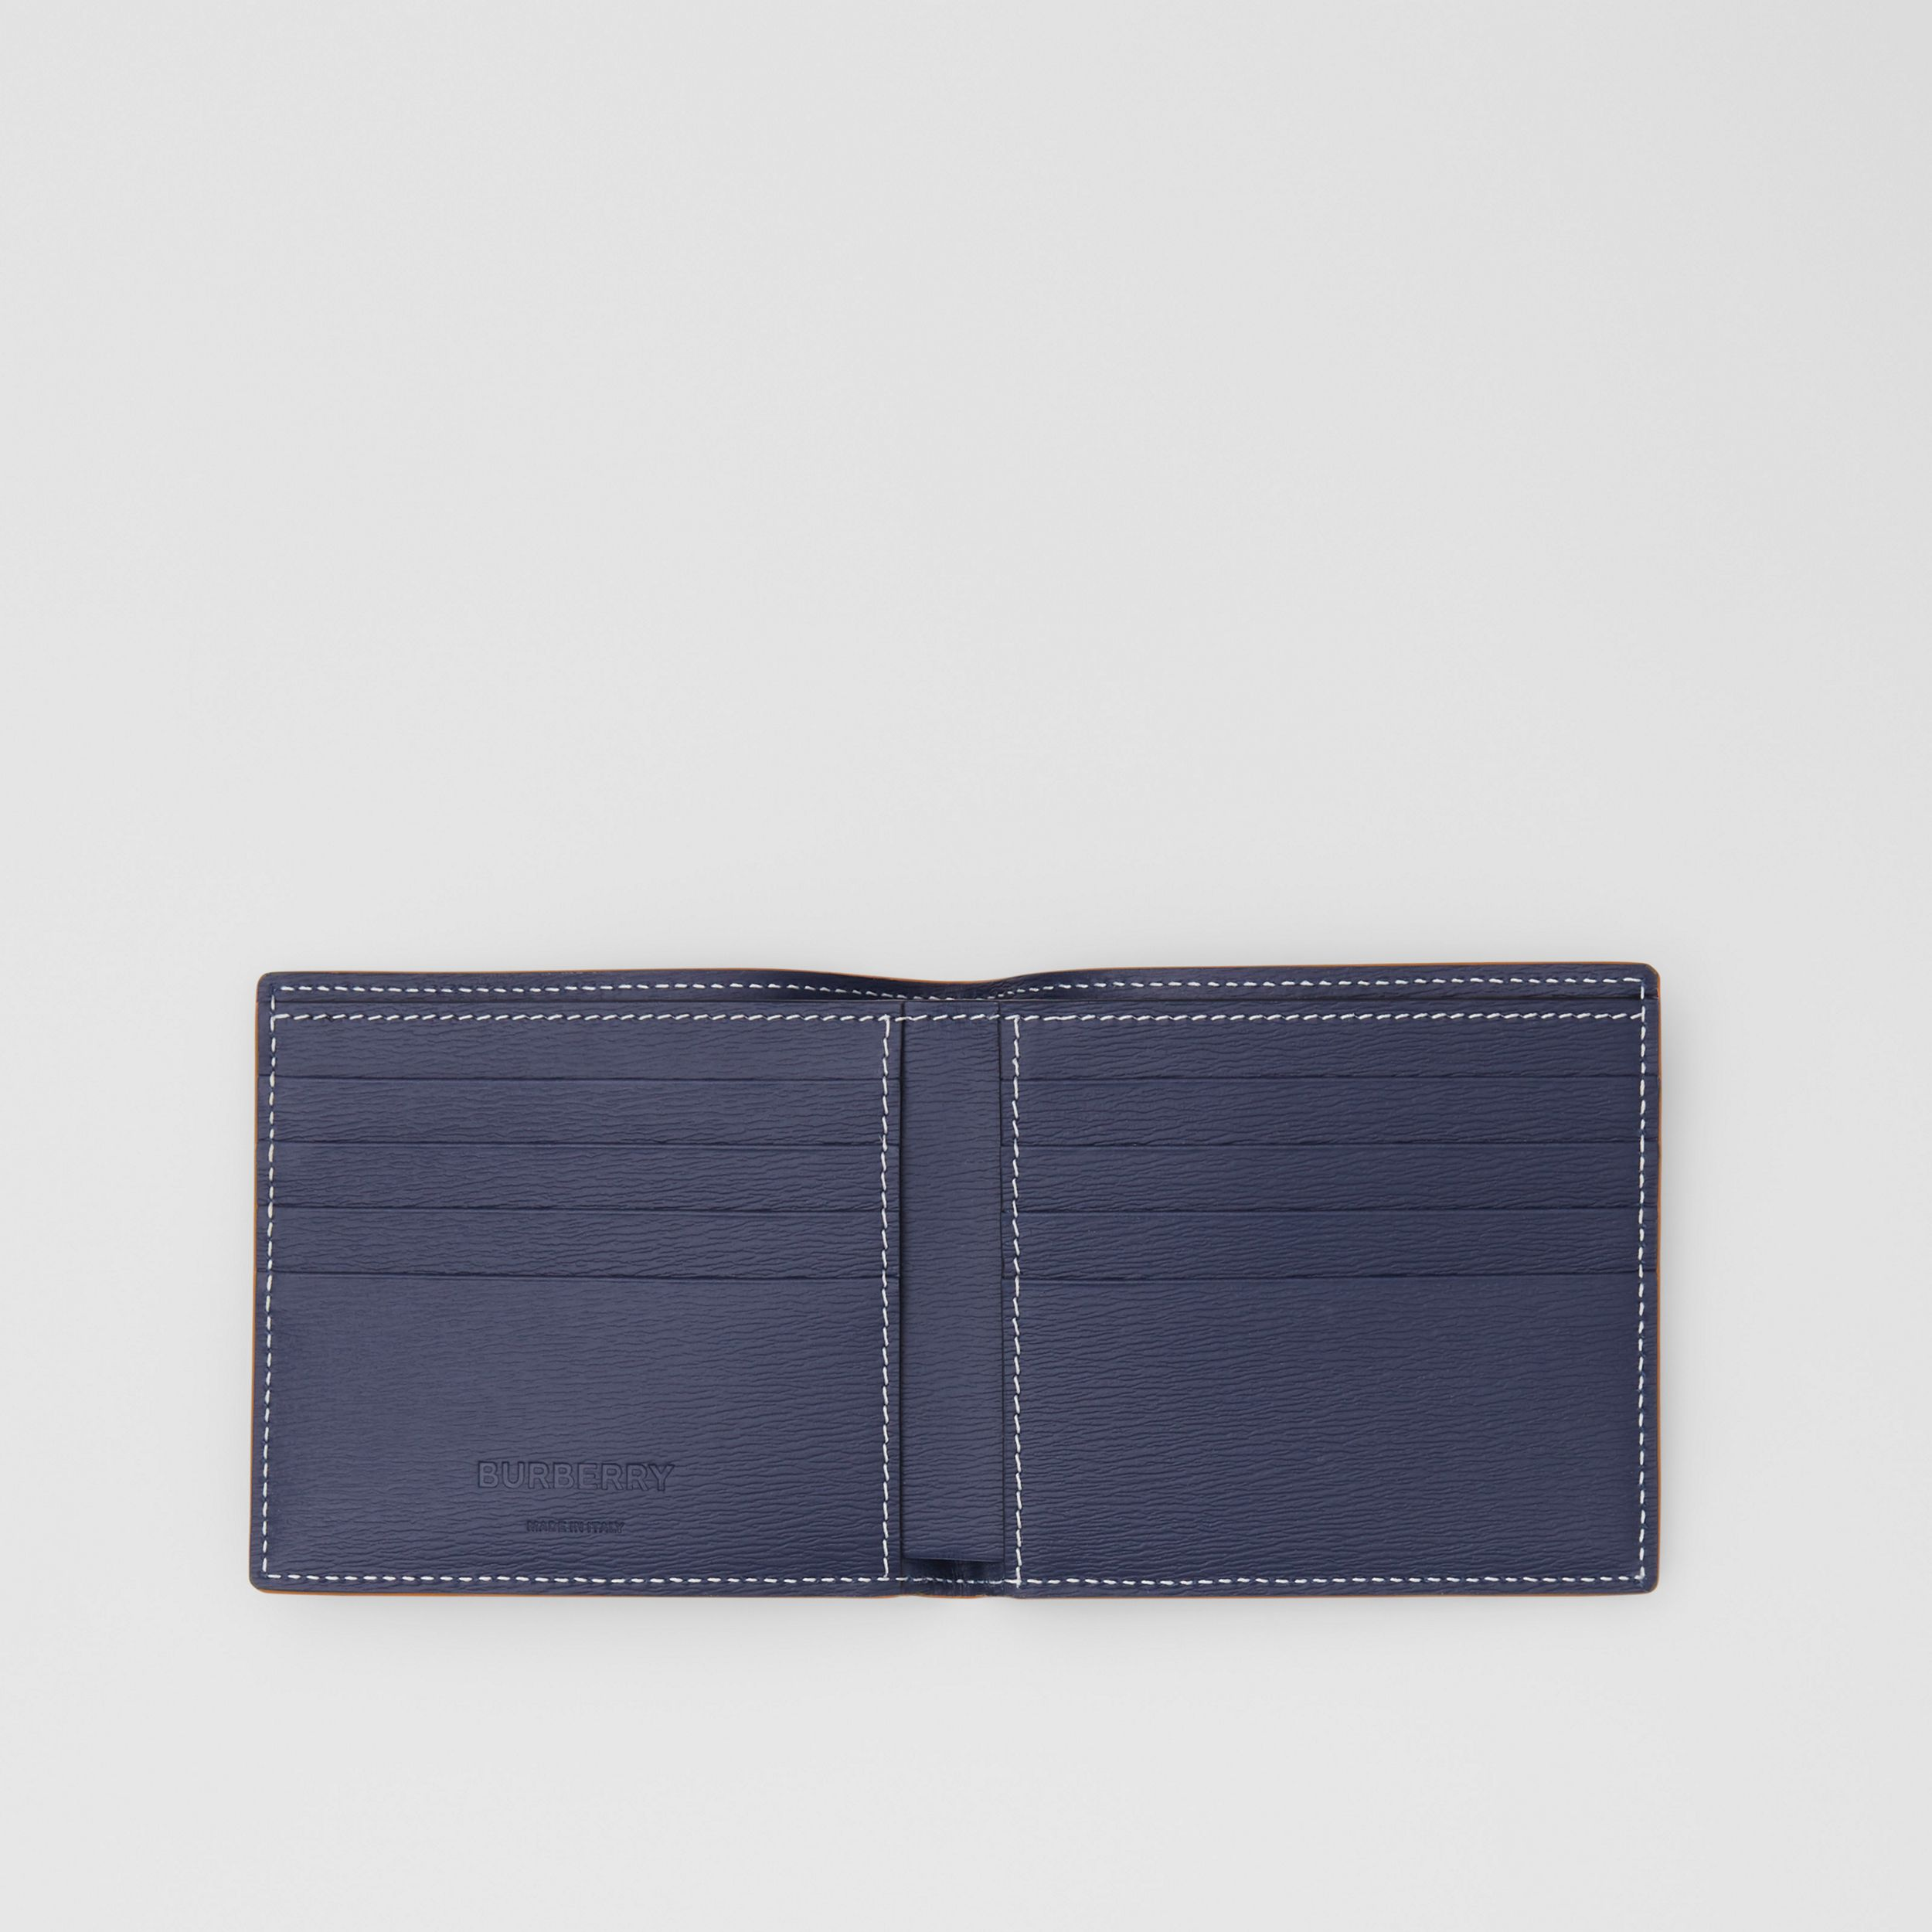 Topstitched Grainy Leather International Bifold Wallet in Navy - Men | Burberry - 3